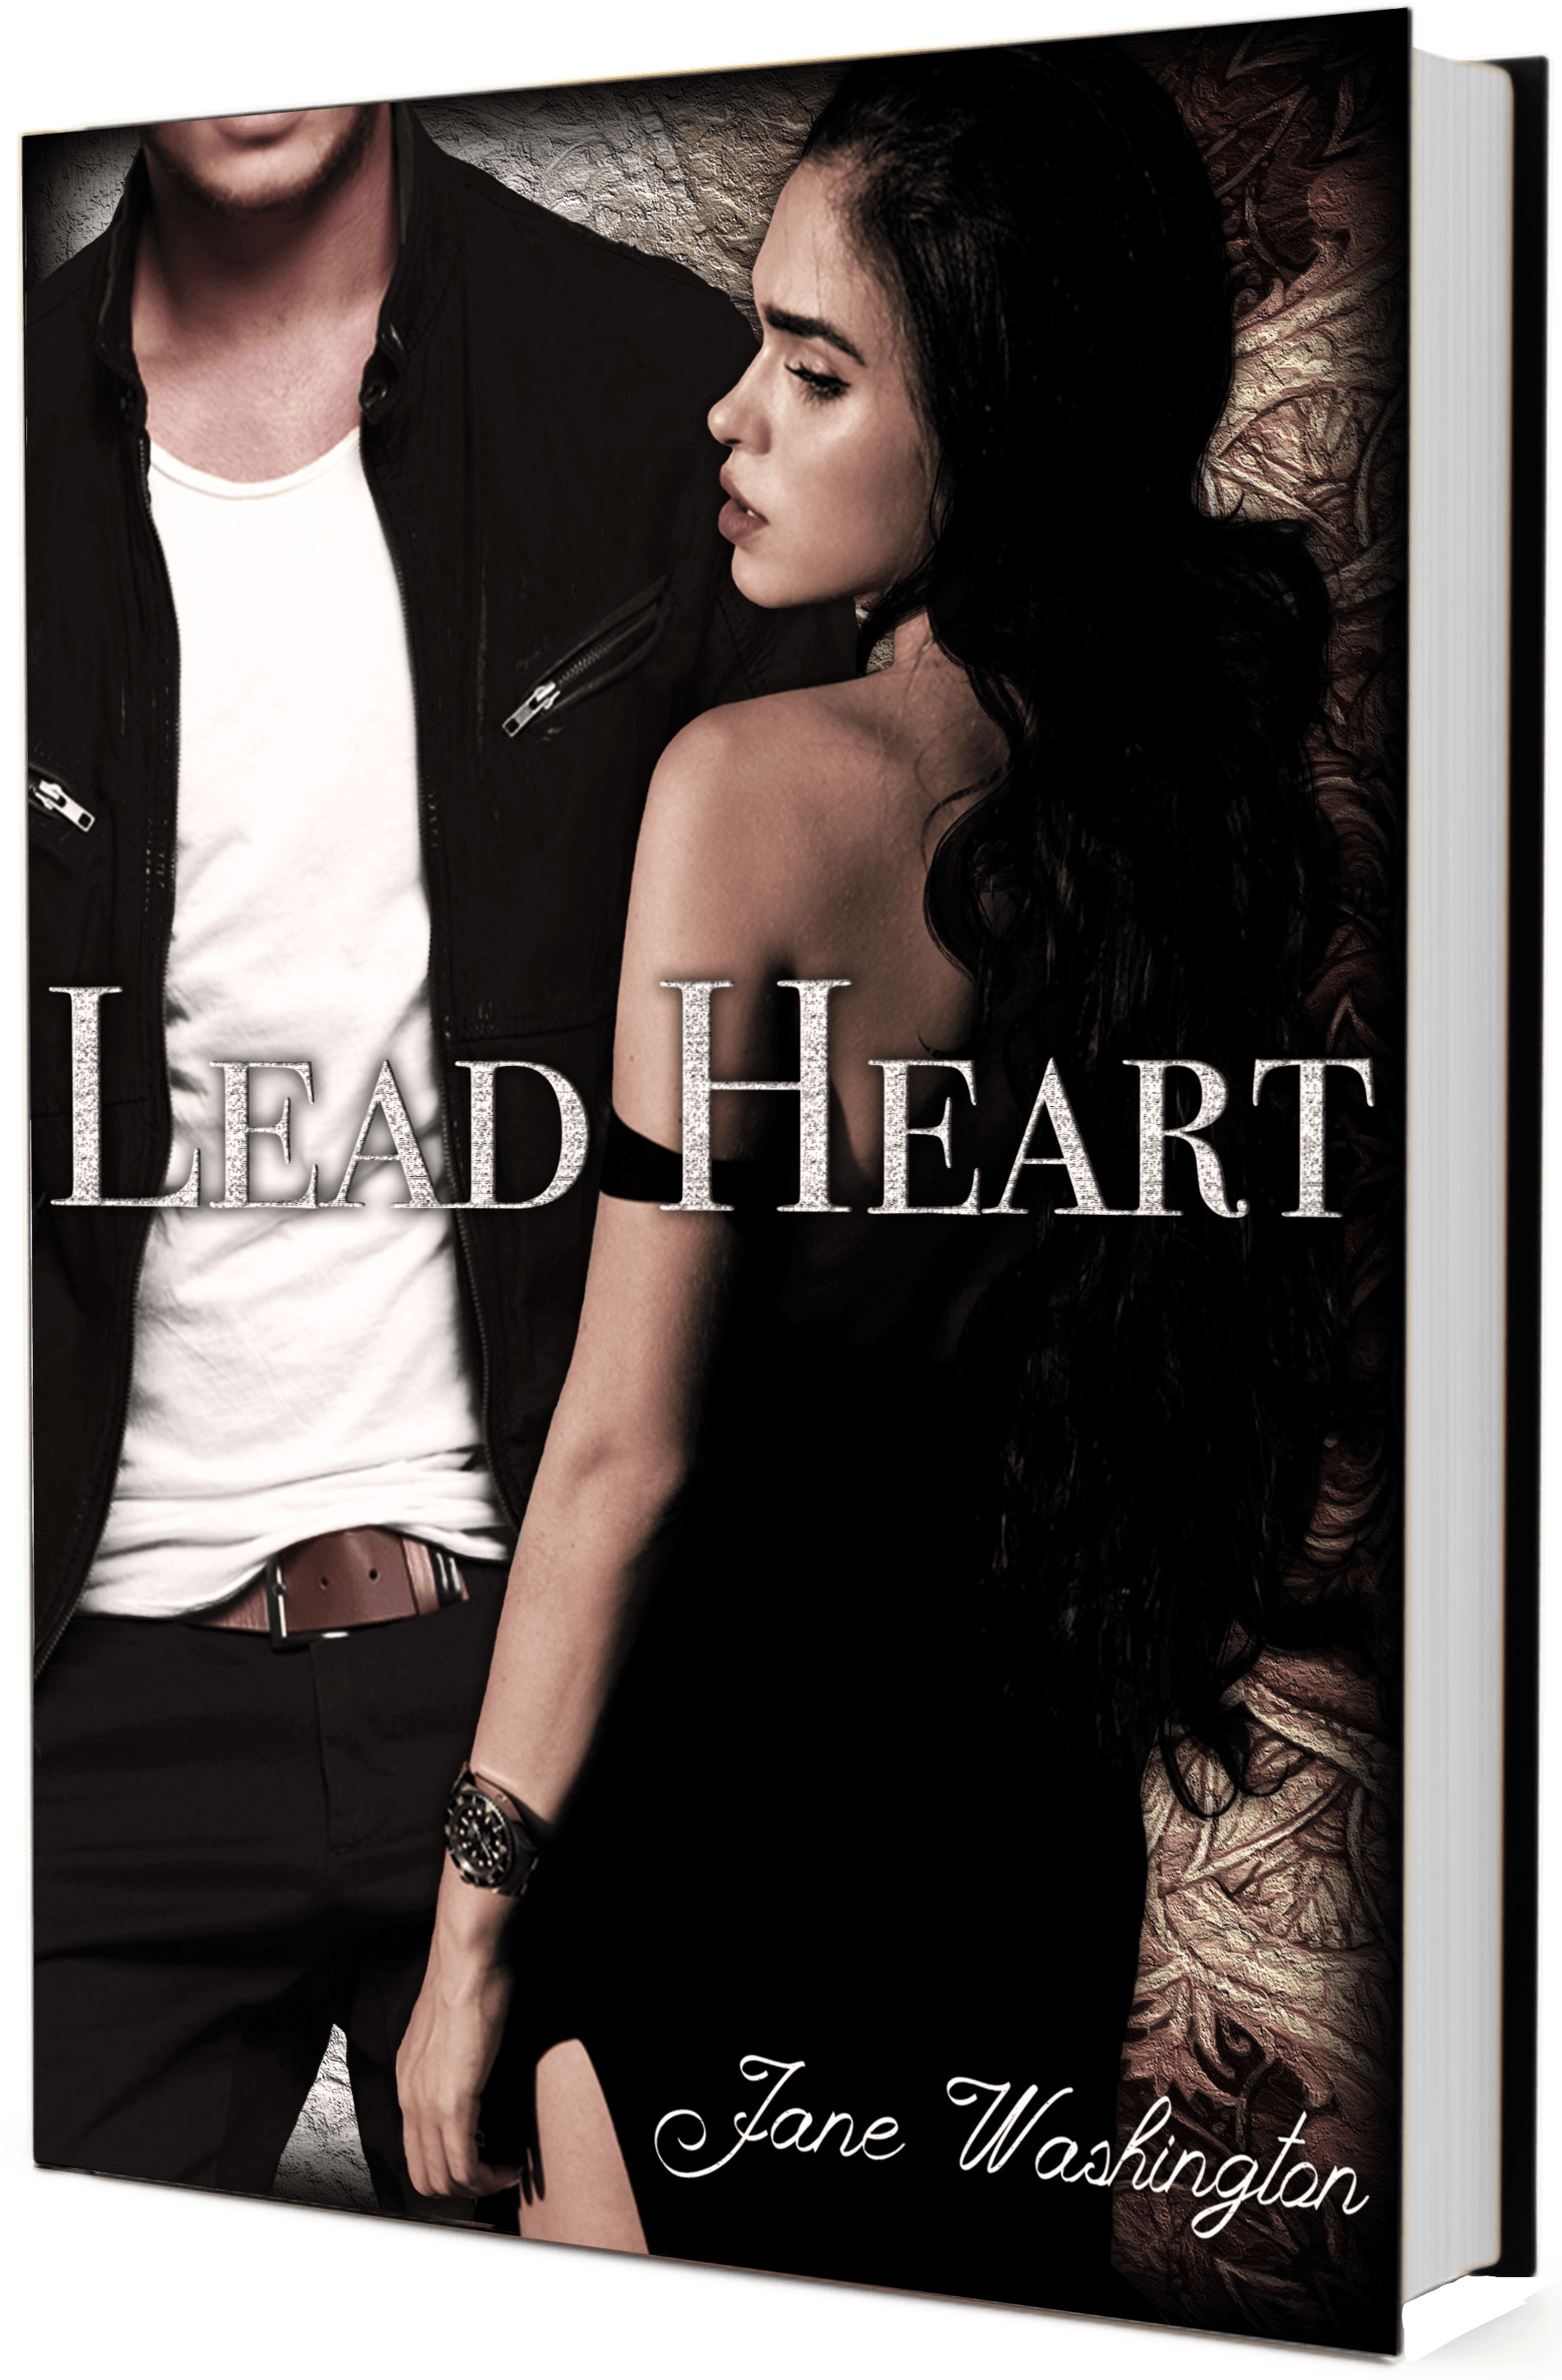 lead dheart book cover